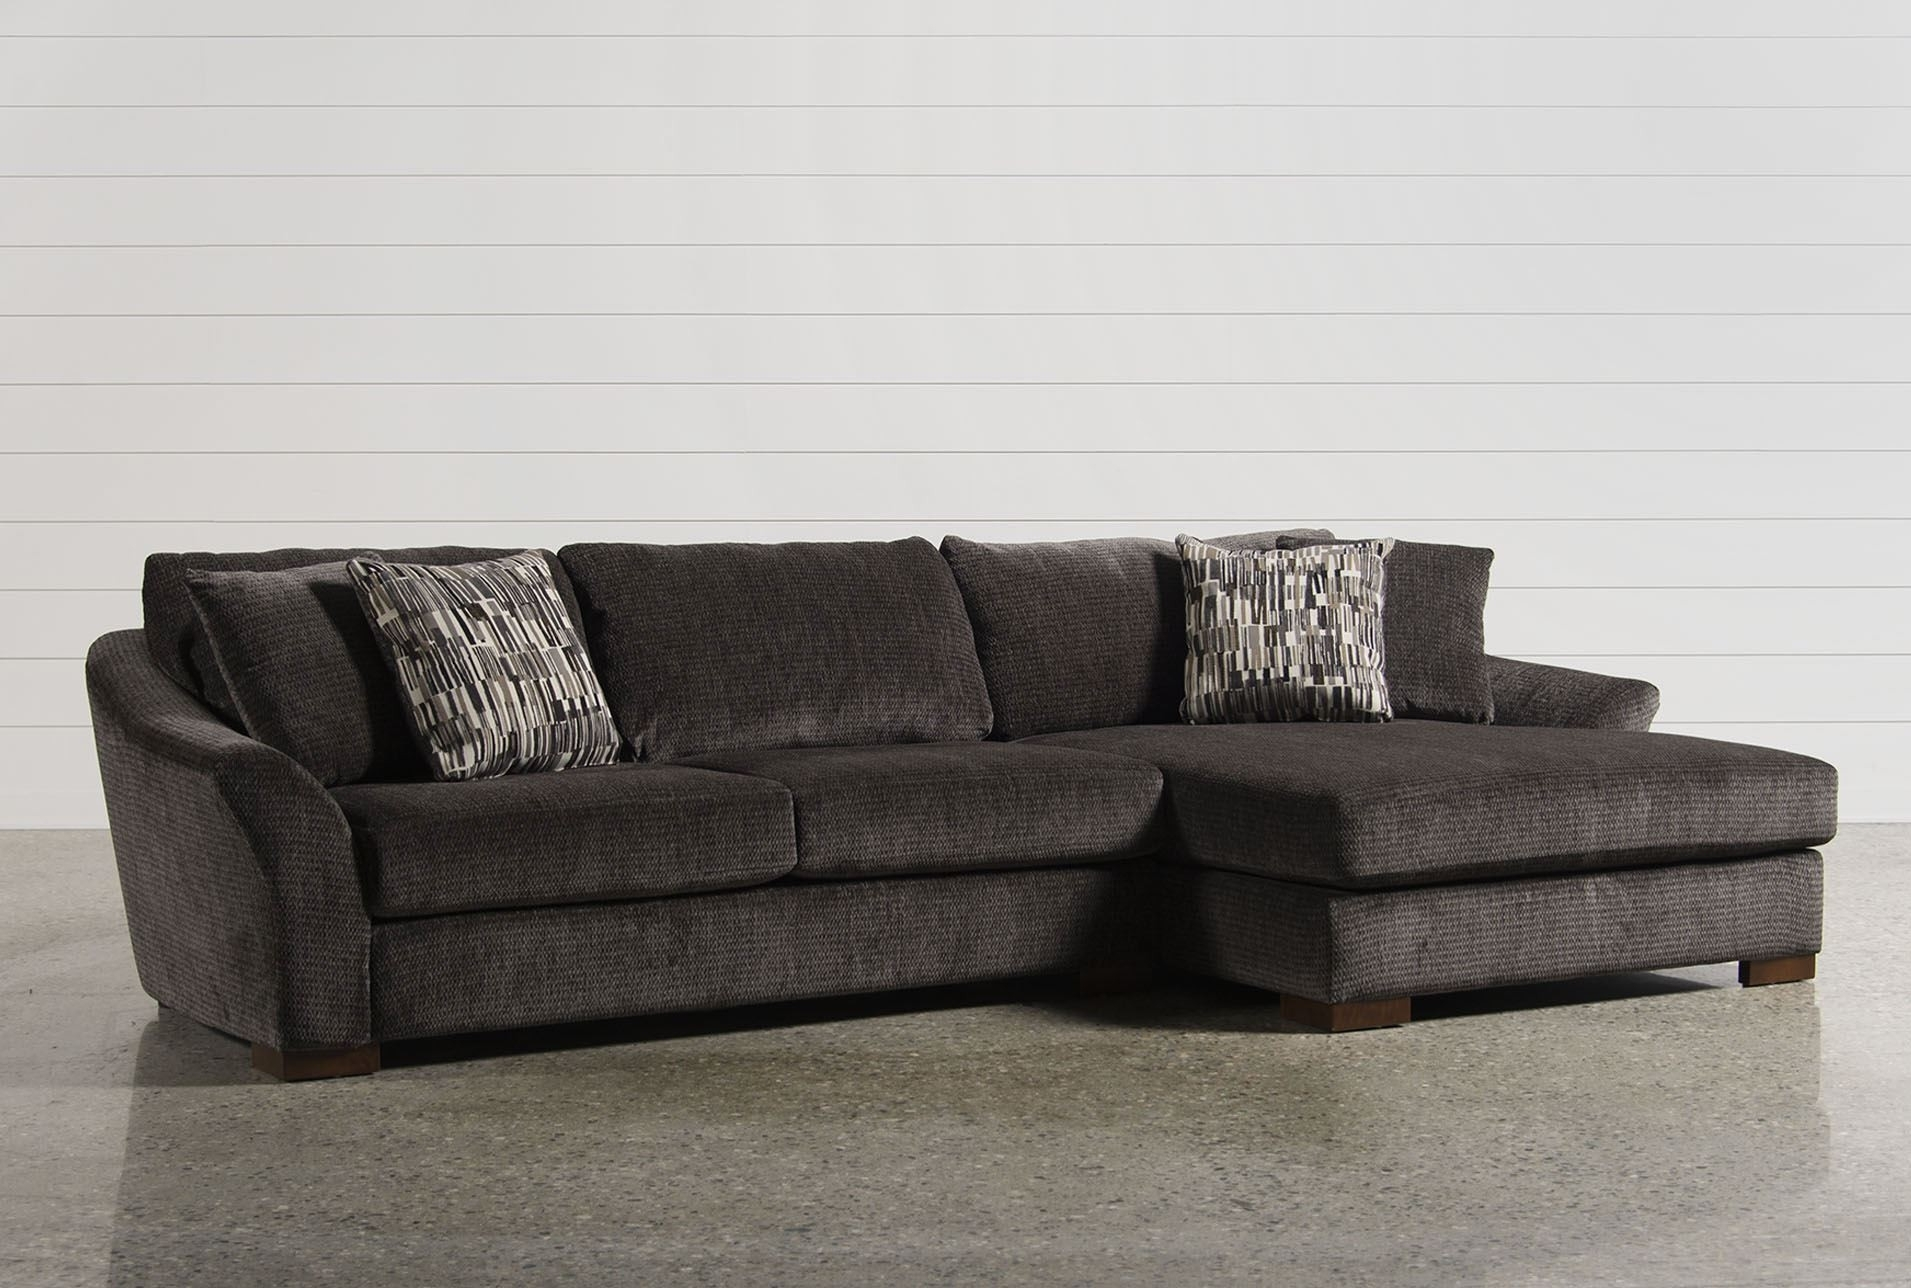 Living Spaces Sectional - Tidex in Cosmos Grey 2 Piece Sectionals With Raf Chaise (Image 18 of 30)